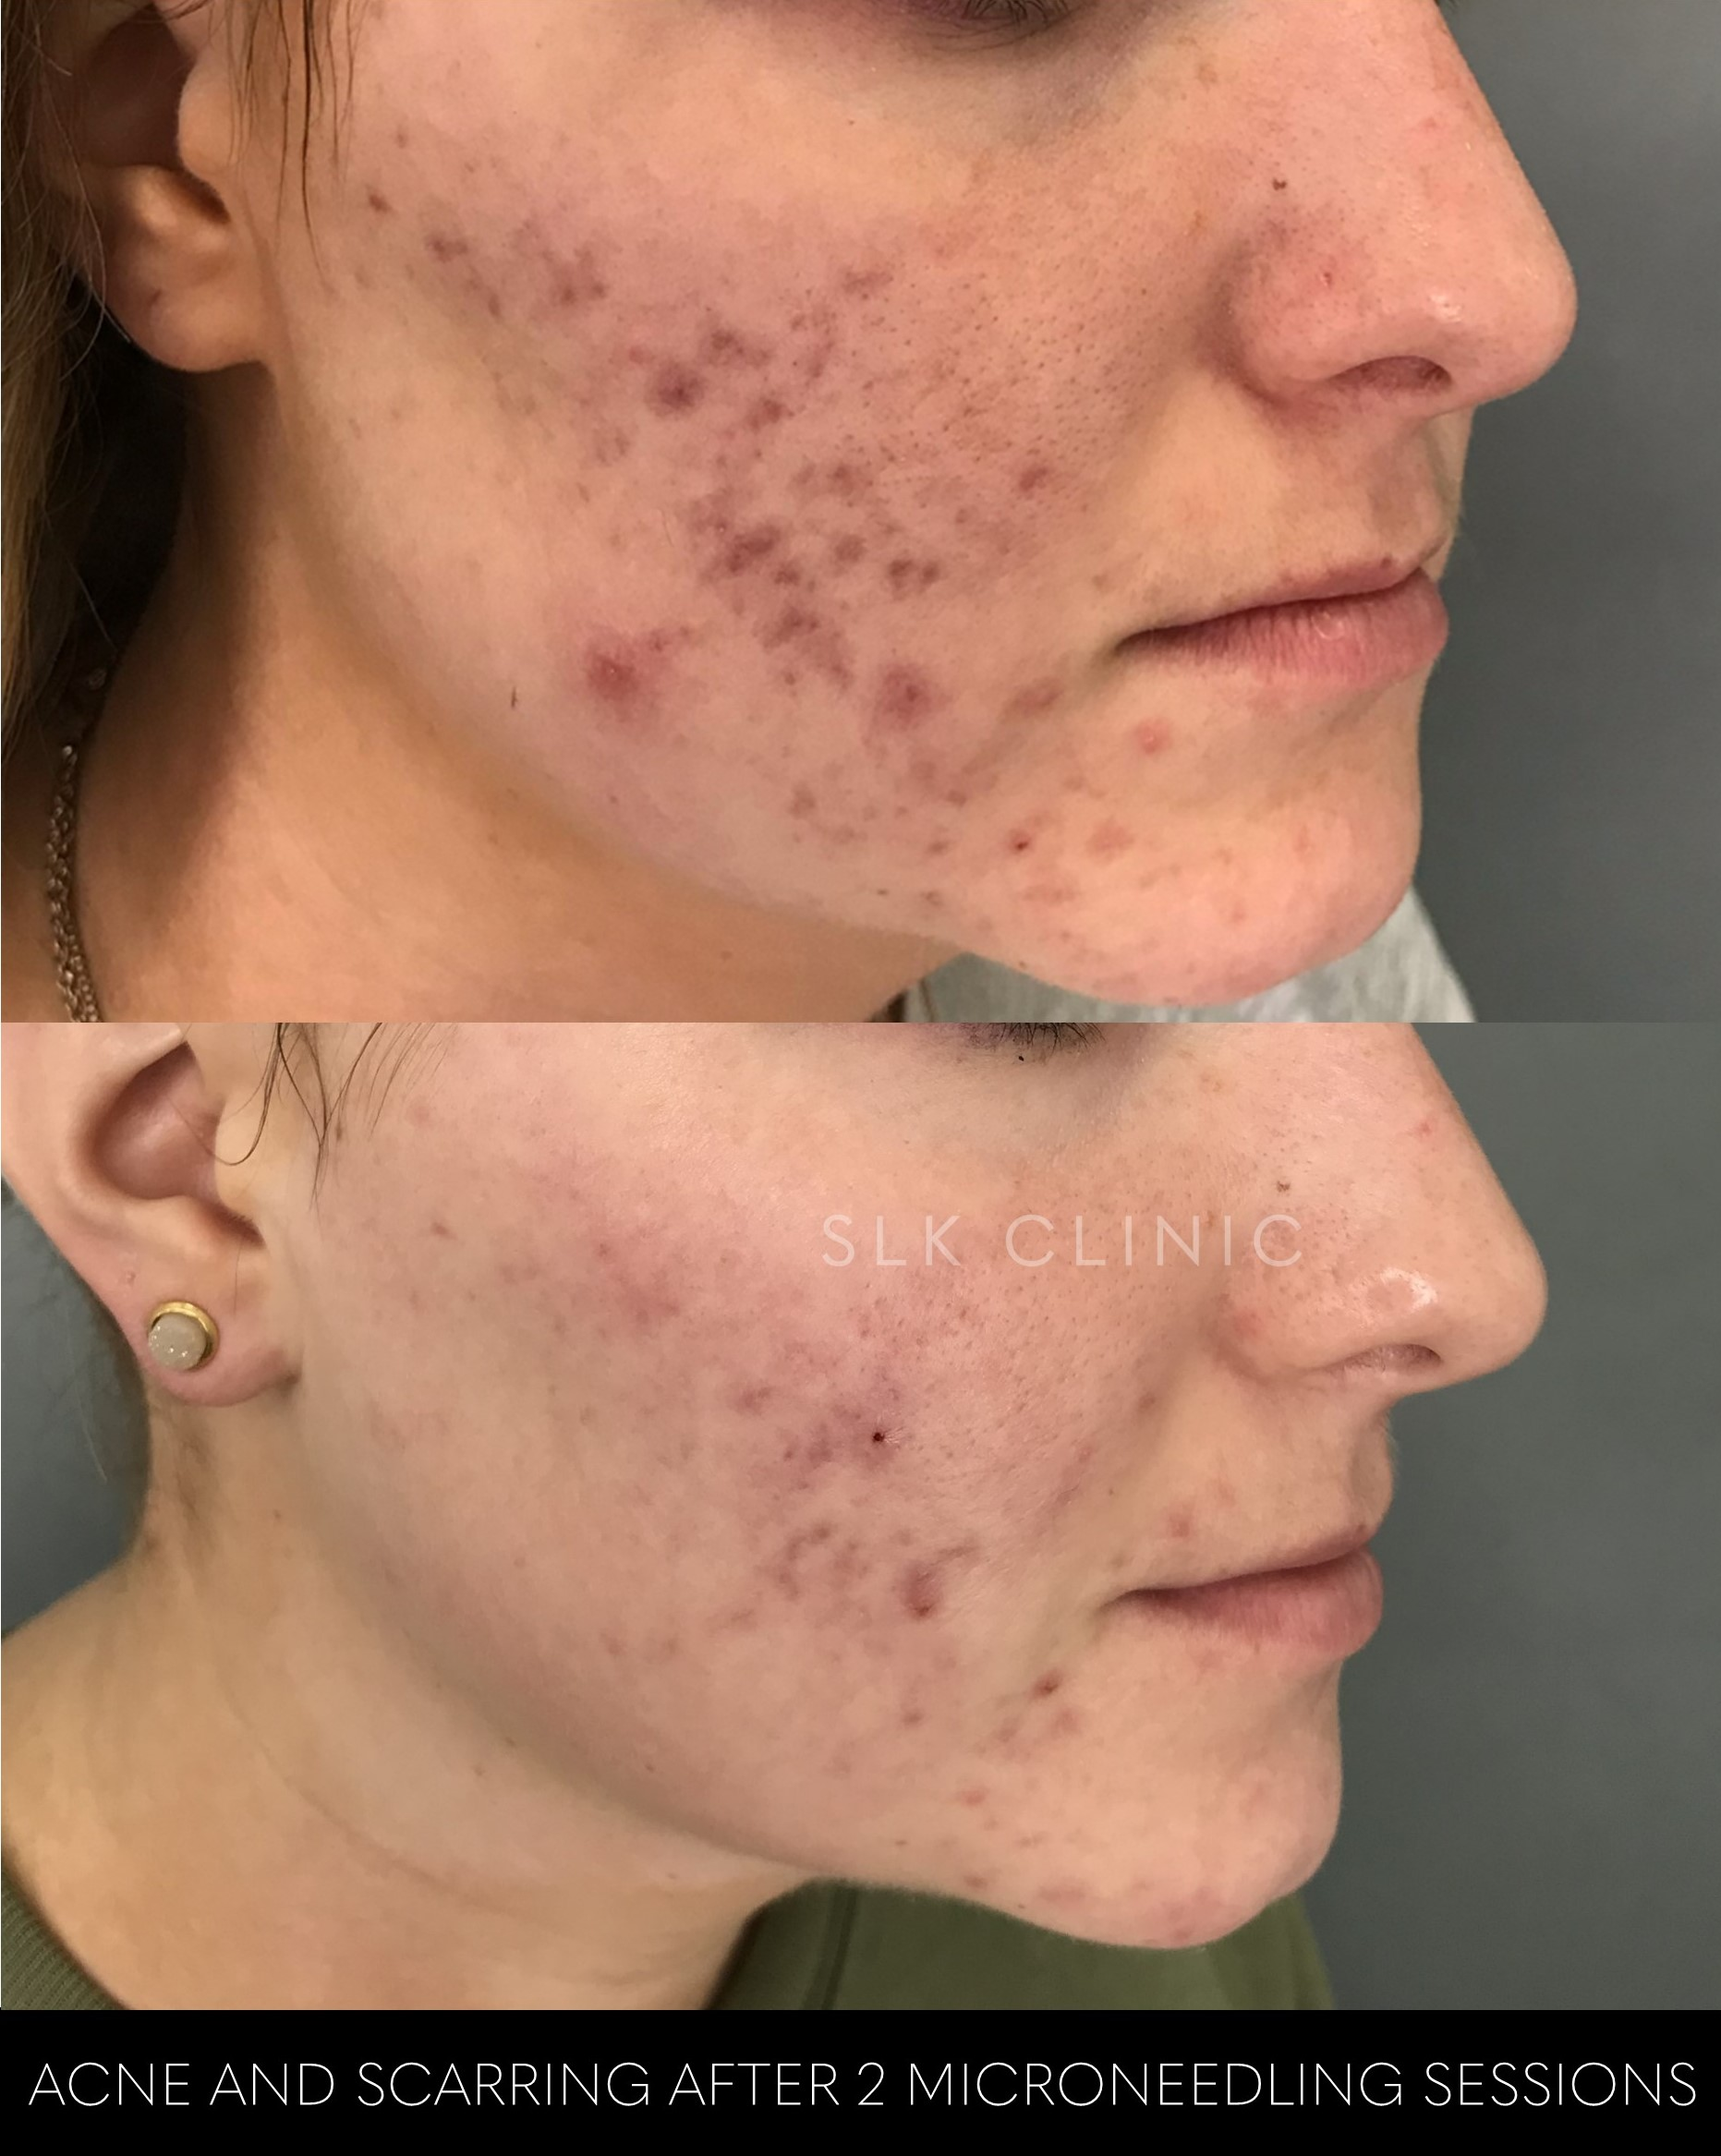 before and after 2 microneedling sessions for acne scarring; scar removal in Nashville SLK Clinic